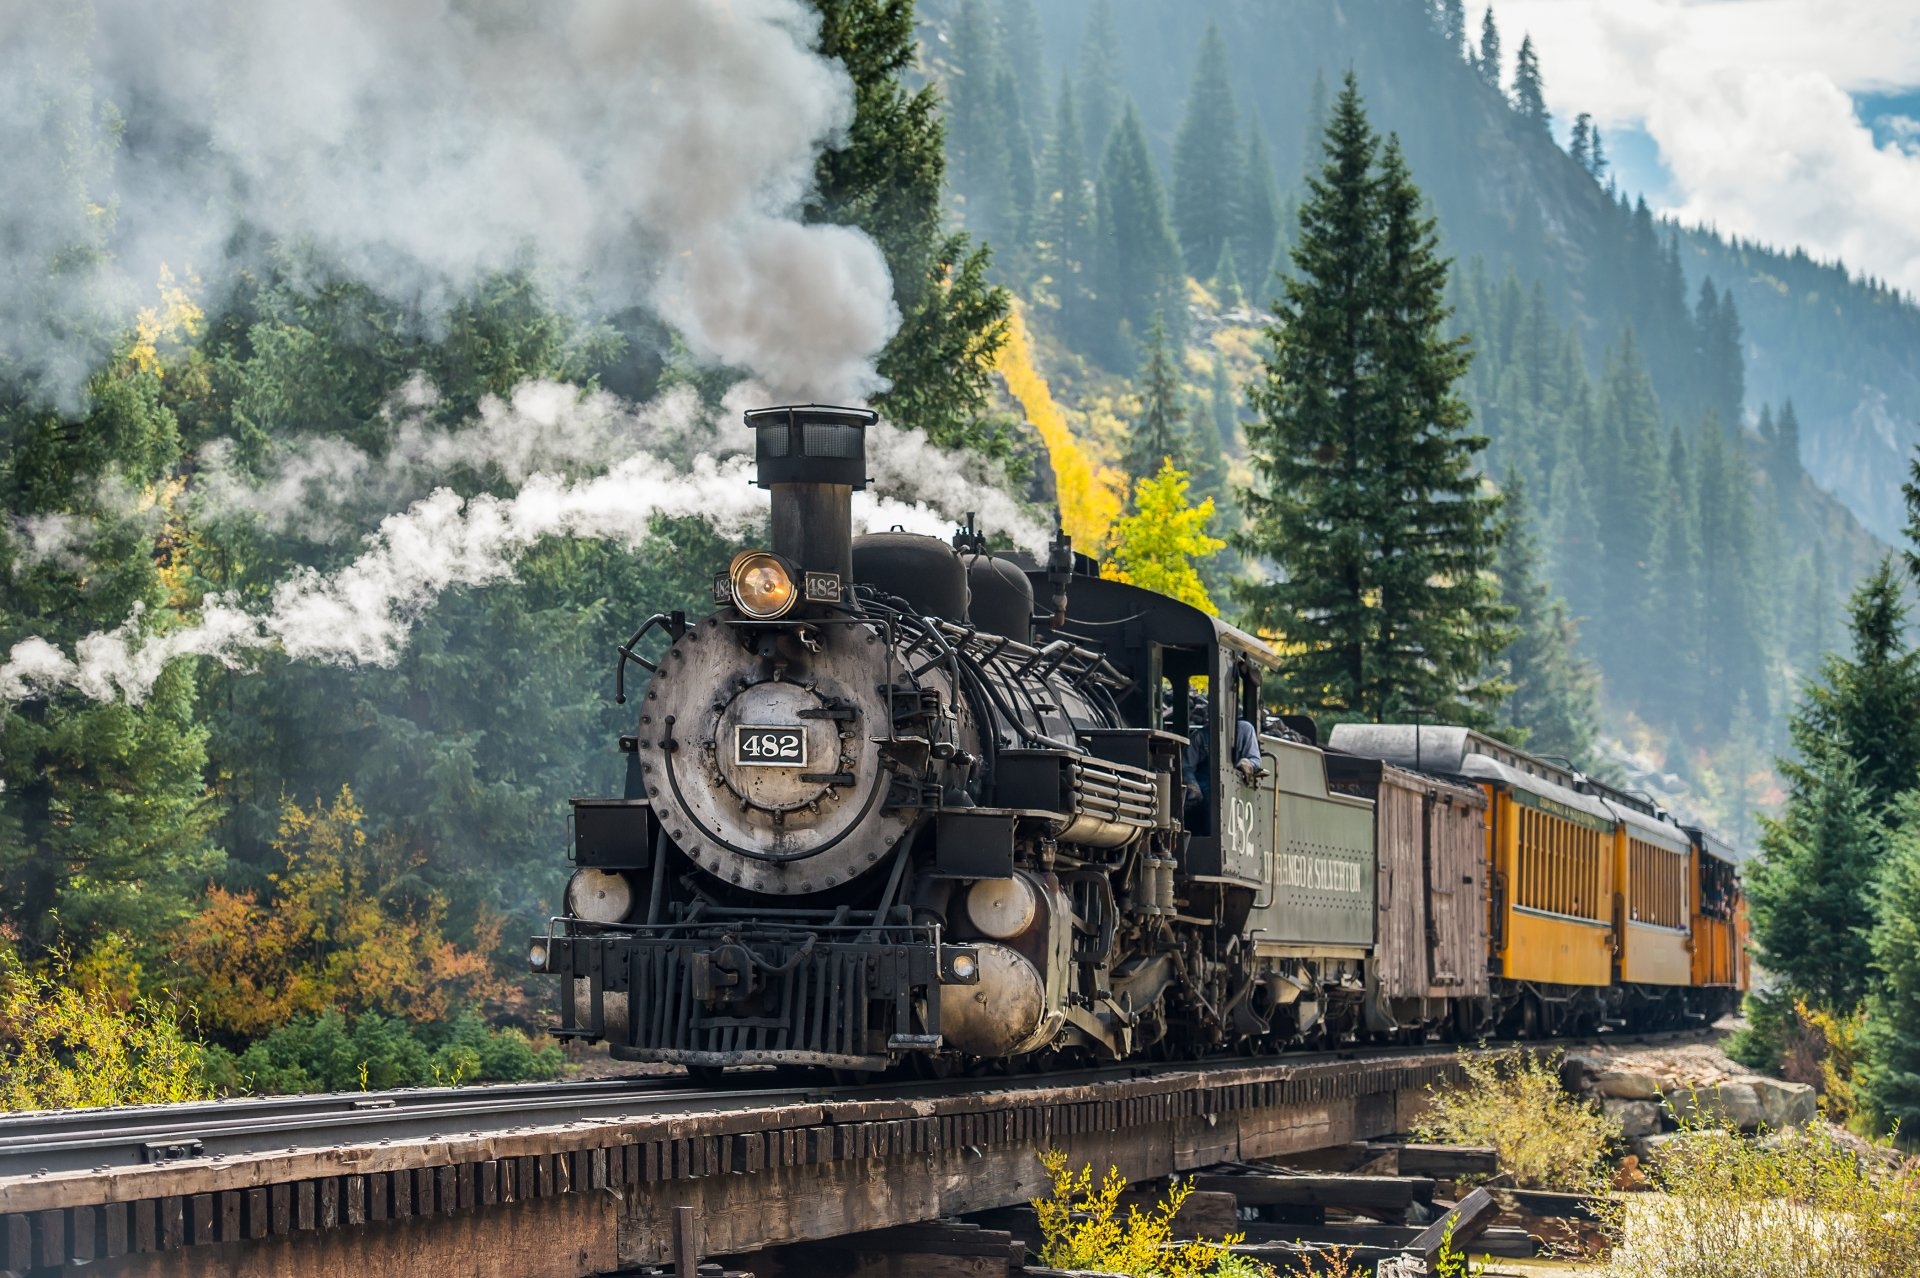 Vehicles - Train  Locomotive Steam Train Wallpaper